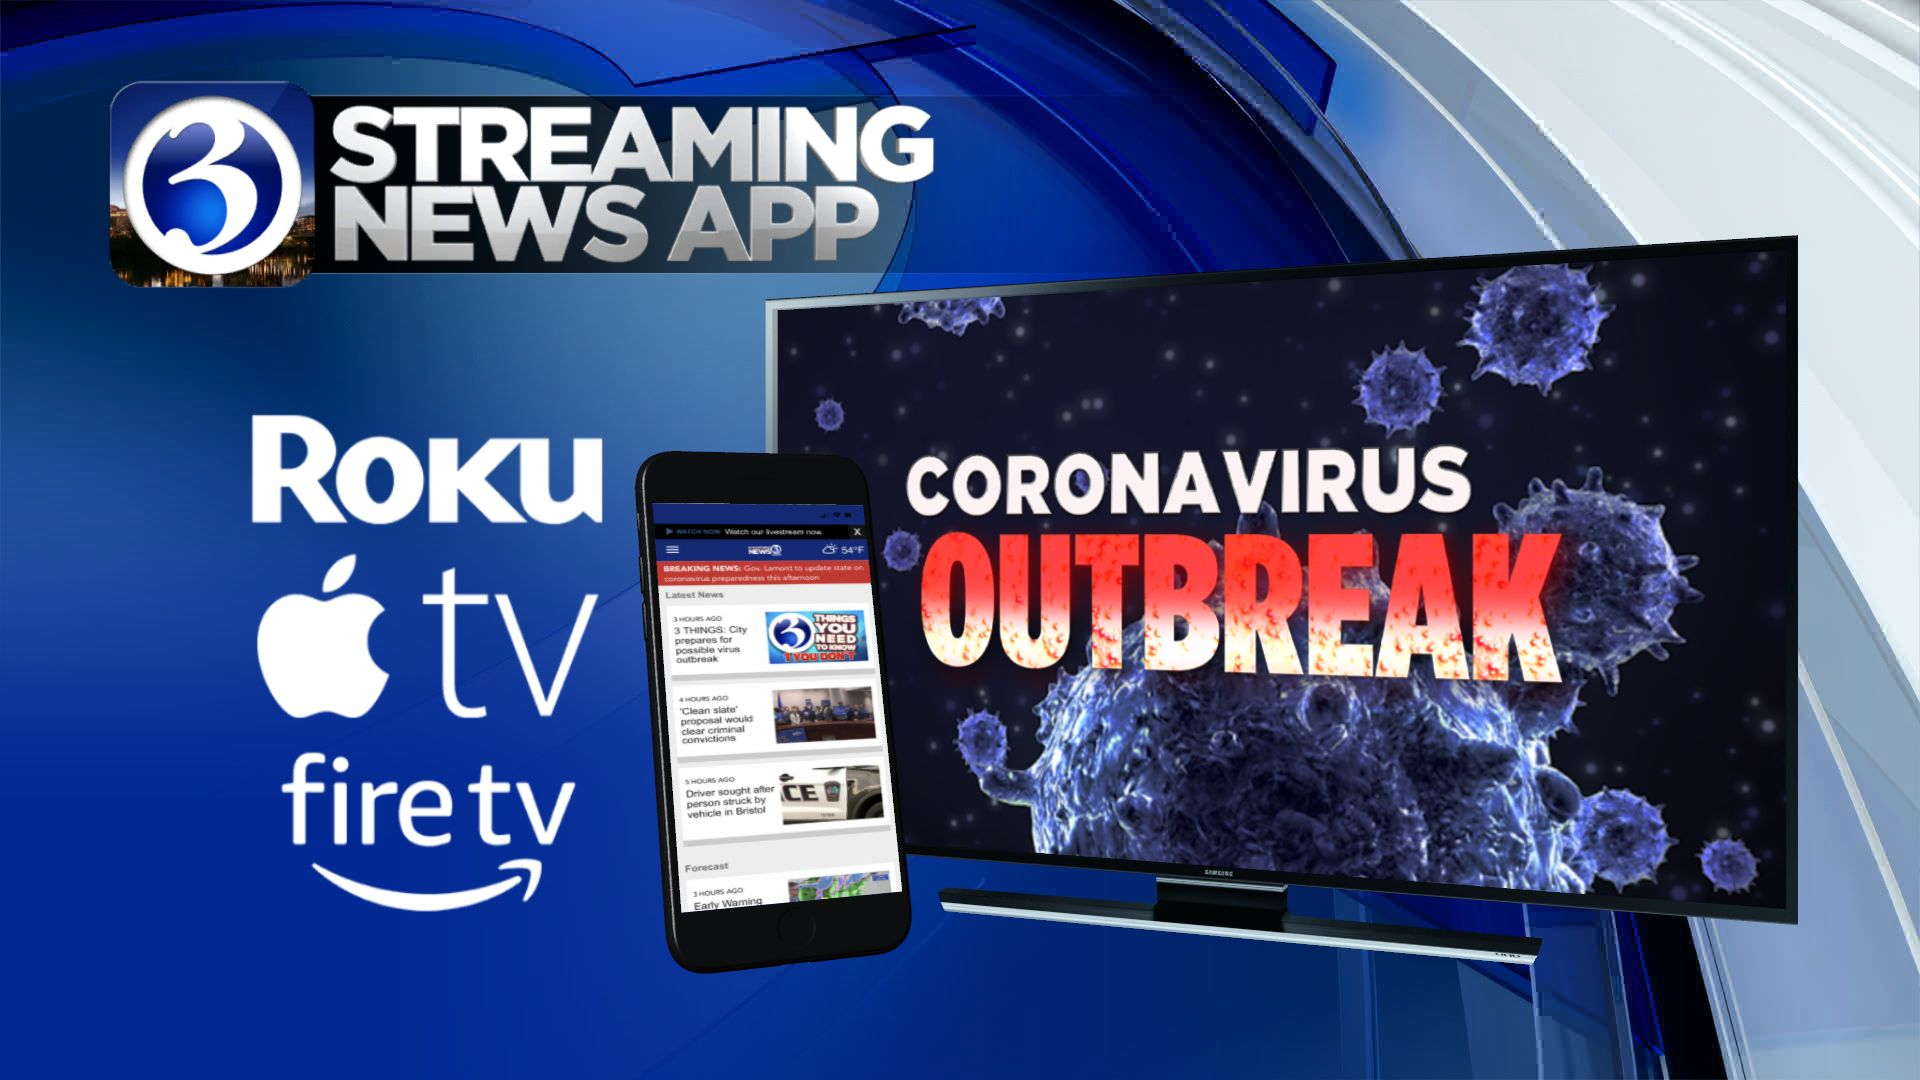 Stay updated any time of day with the Channel 3 Streaming News App. Search WFSB on Roku, Apple TV and Fire TV.